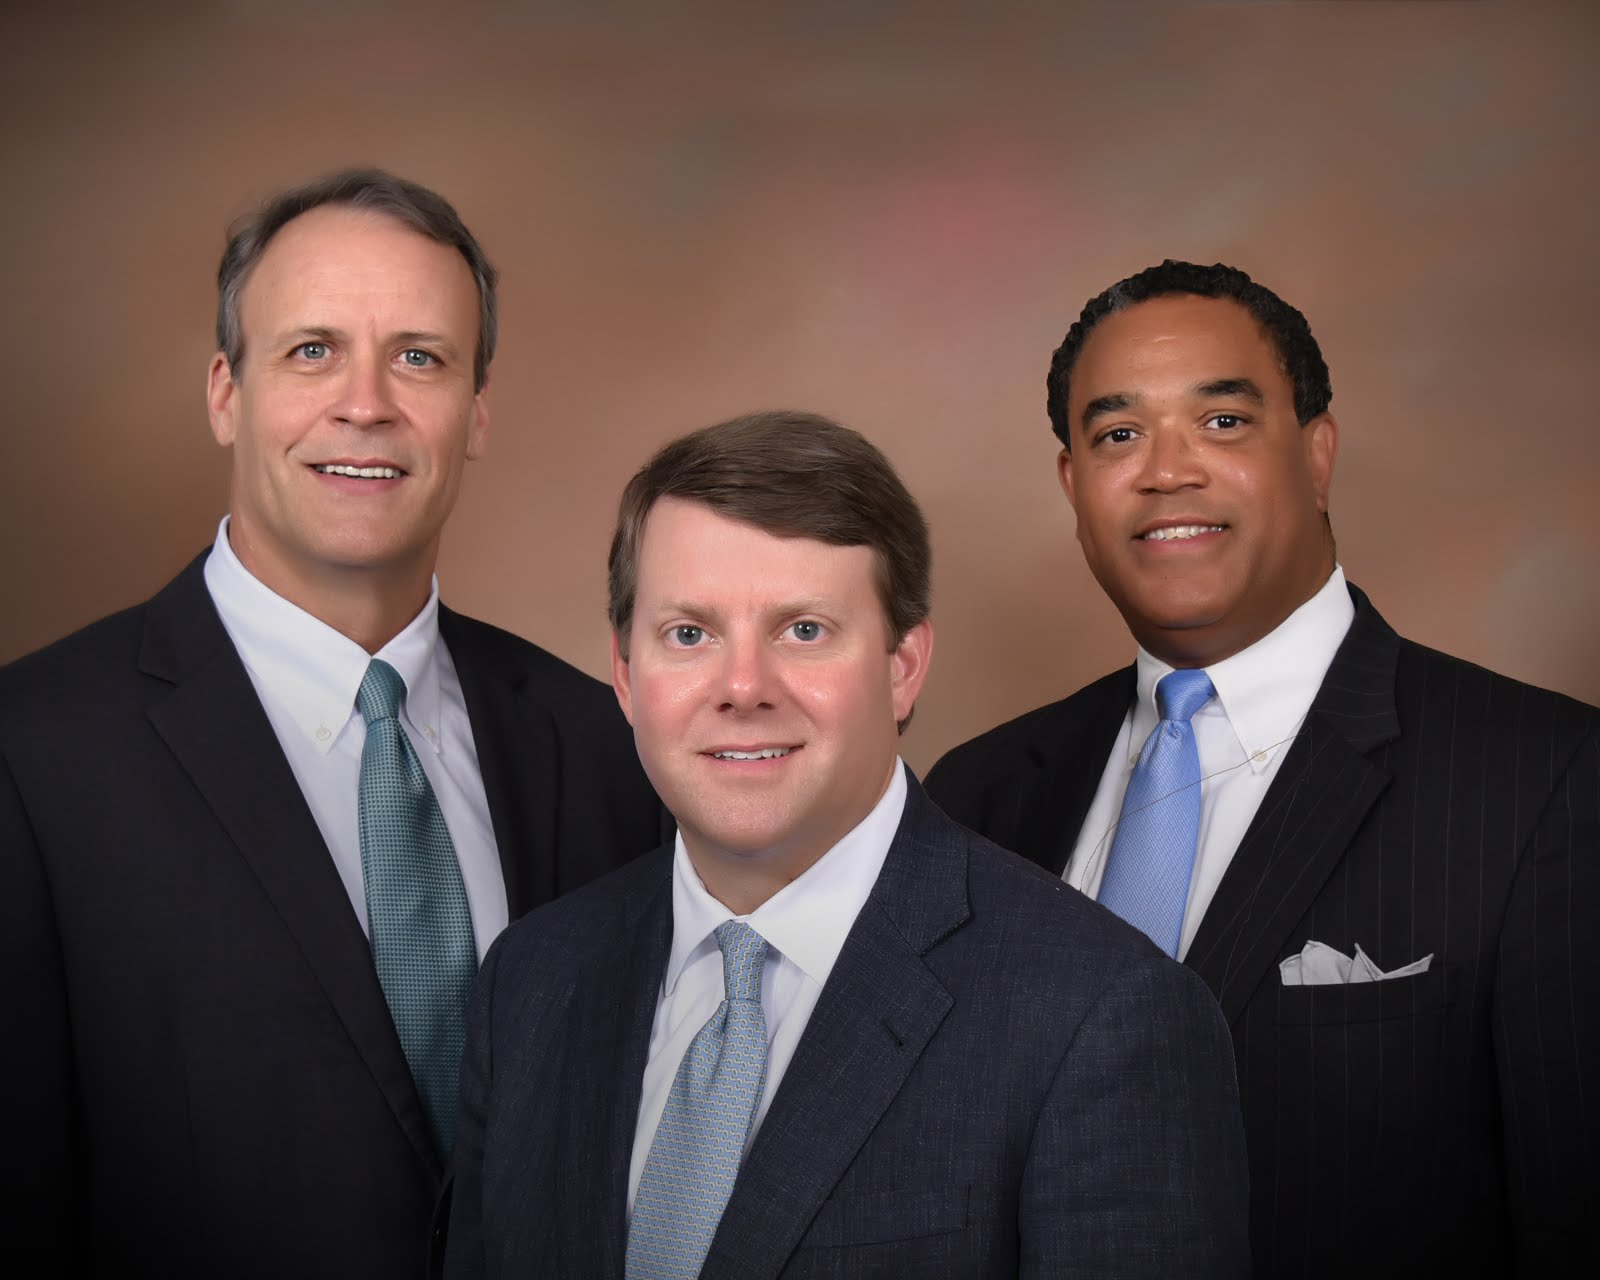 Boteler, Finley & Wolfe, Attorneys